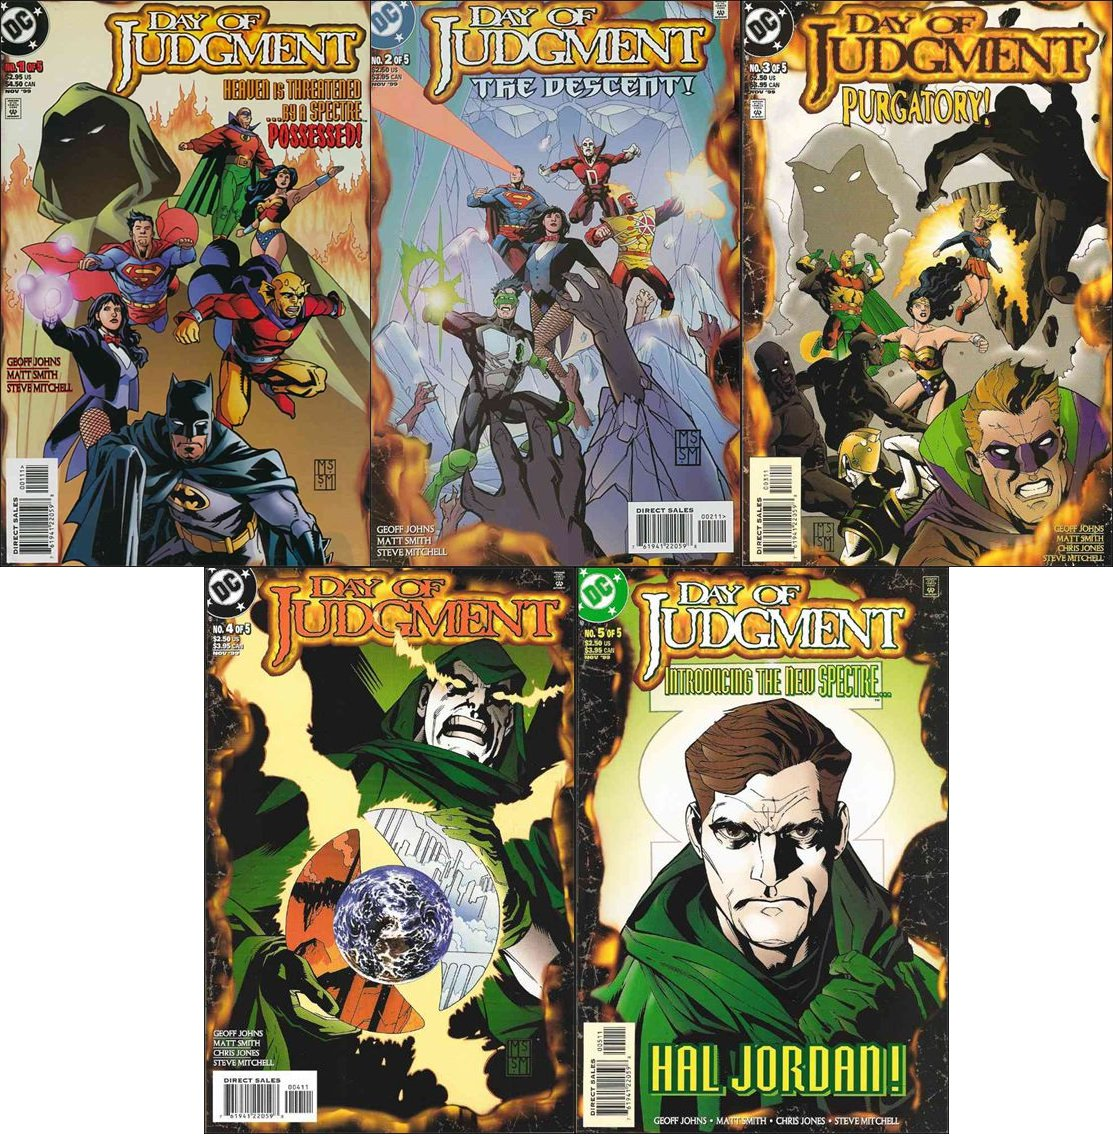 Day of Judgment #1 2 3 4 5 Complete Series [1999] 1st Appearance of New Spectre VF/NM DC Comics